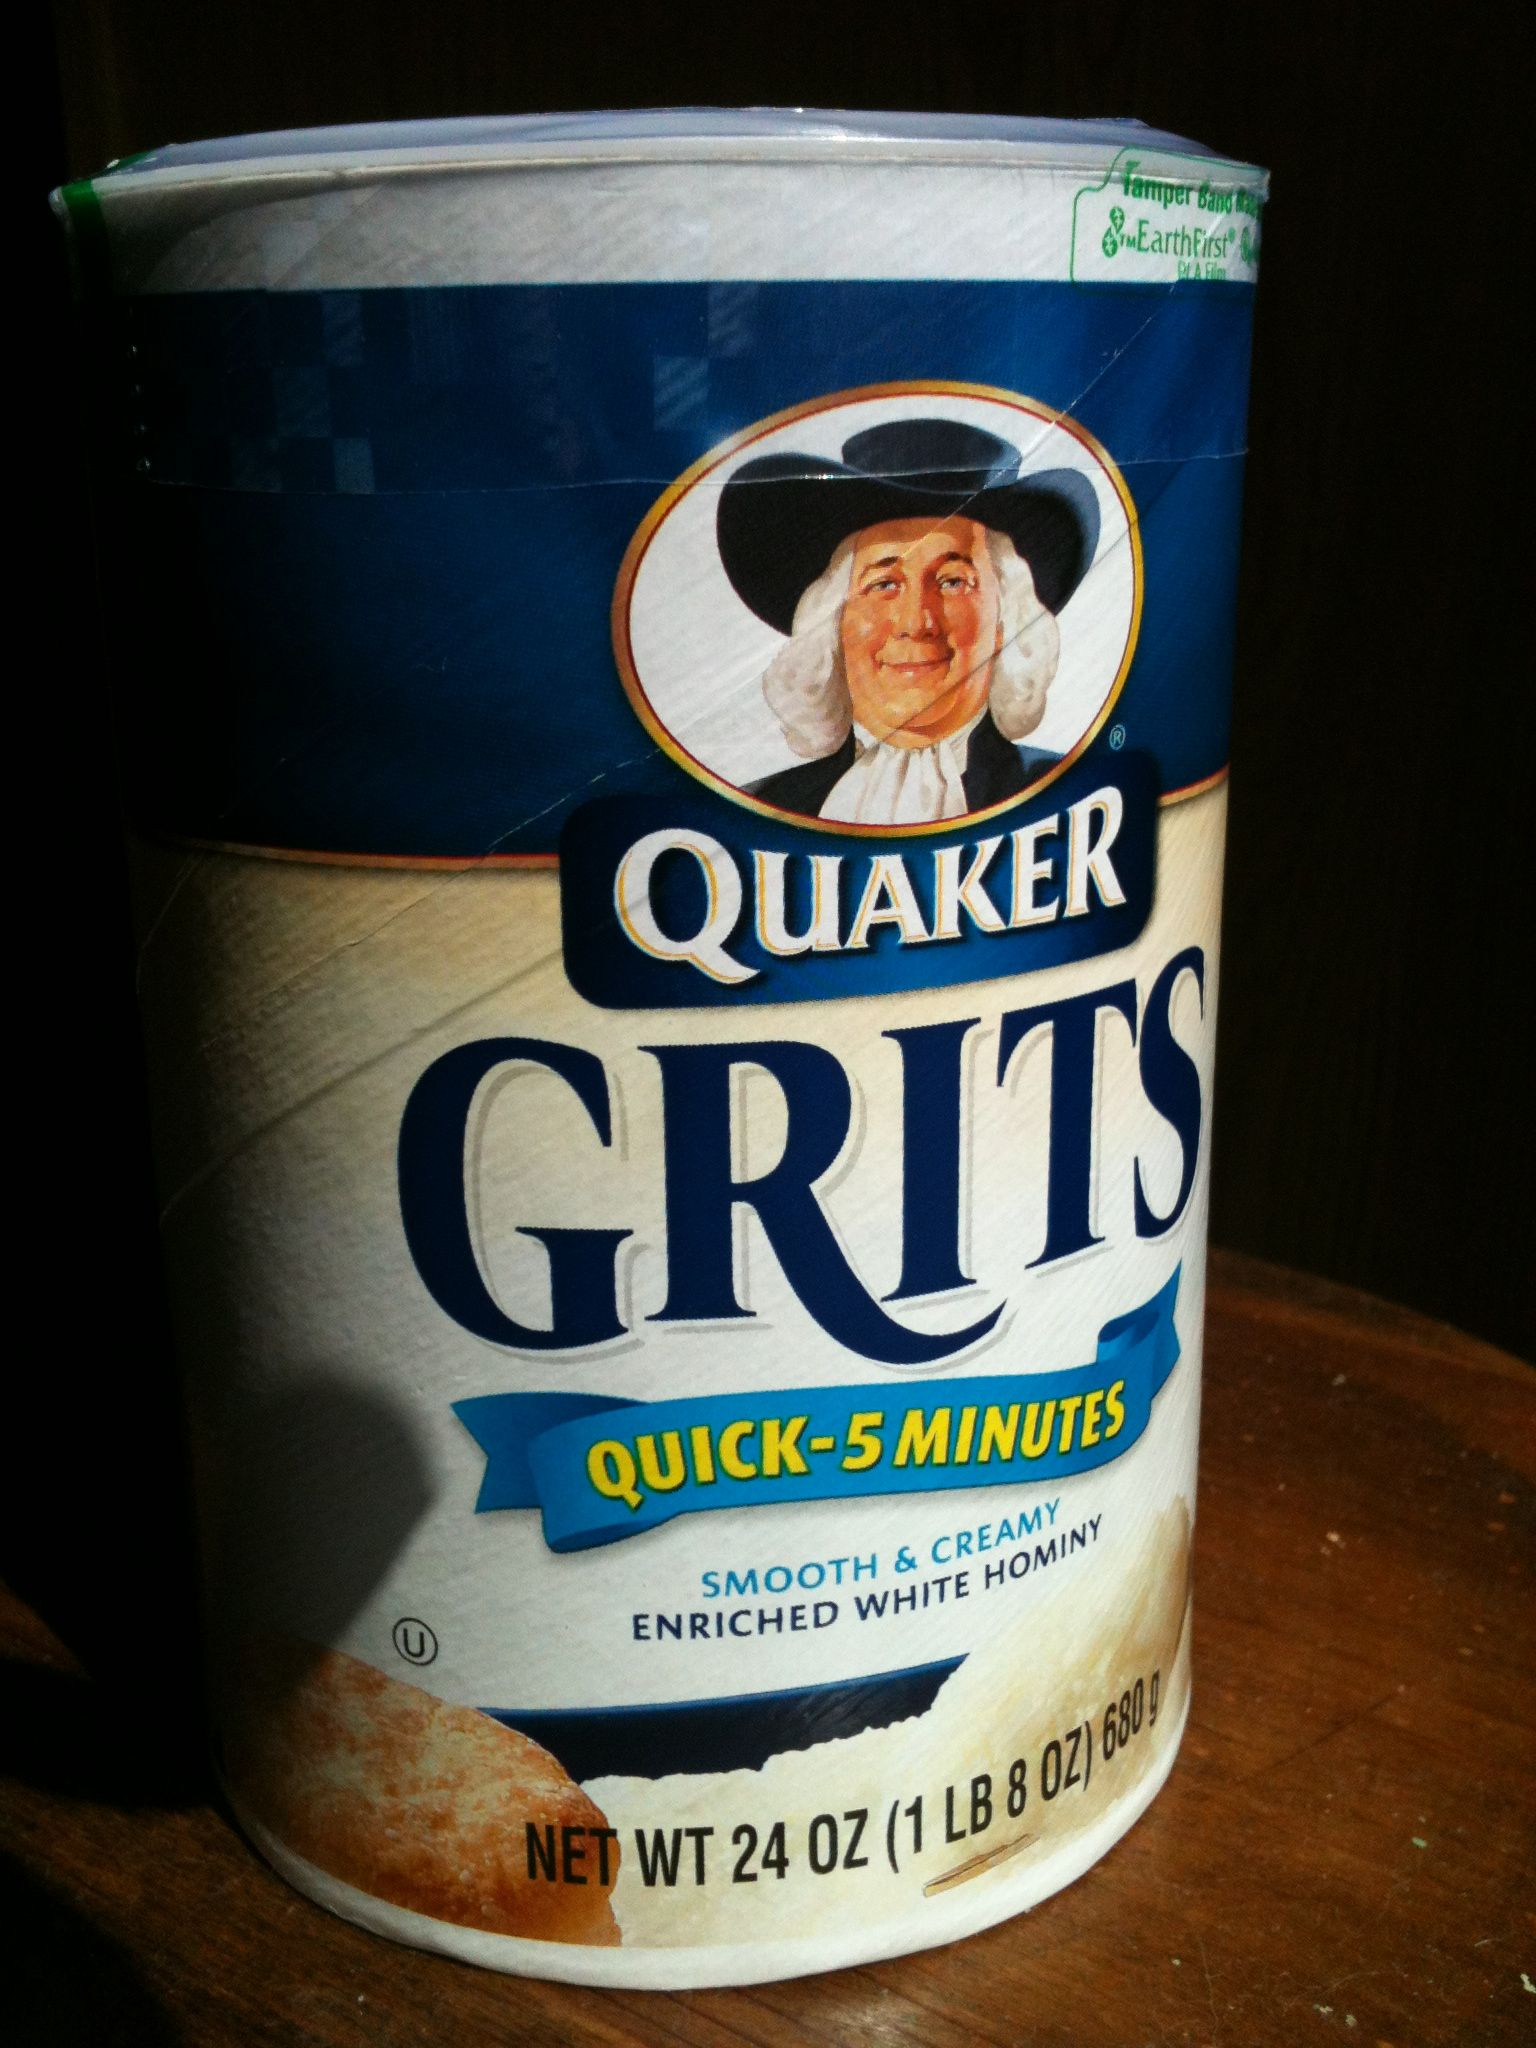 Grits a natural ant hill destroyeri put this is the